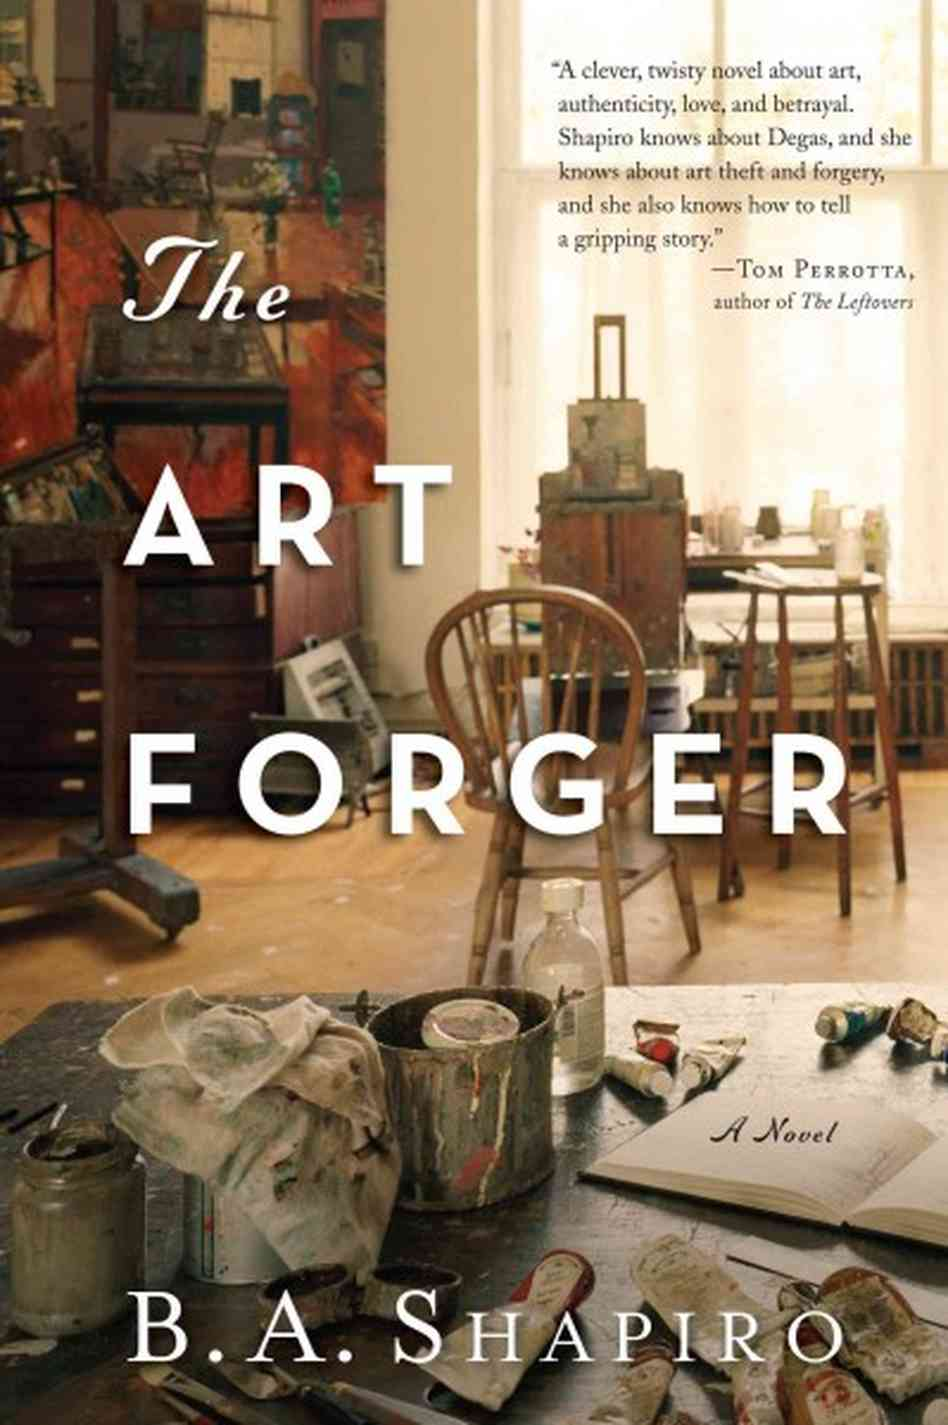 Hardback book cover of The Art Forger by B.A. Shapiro